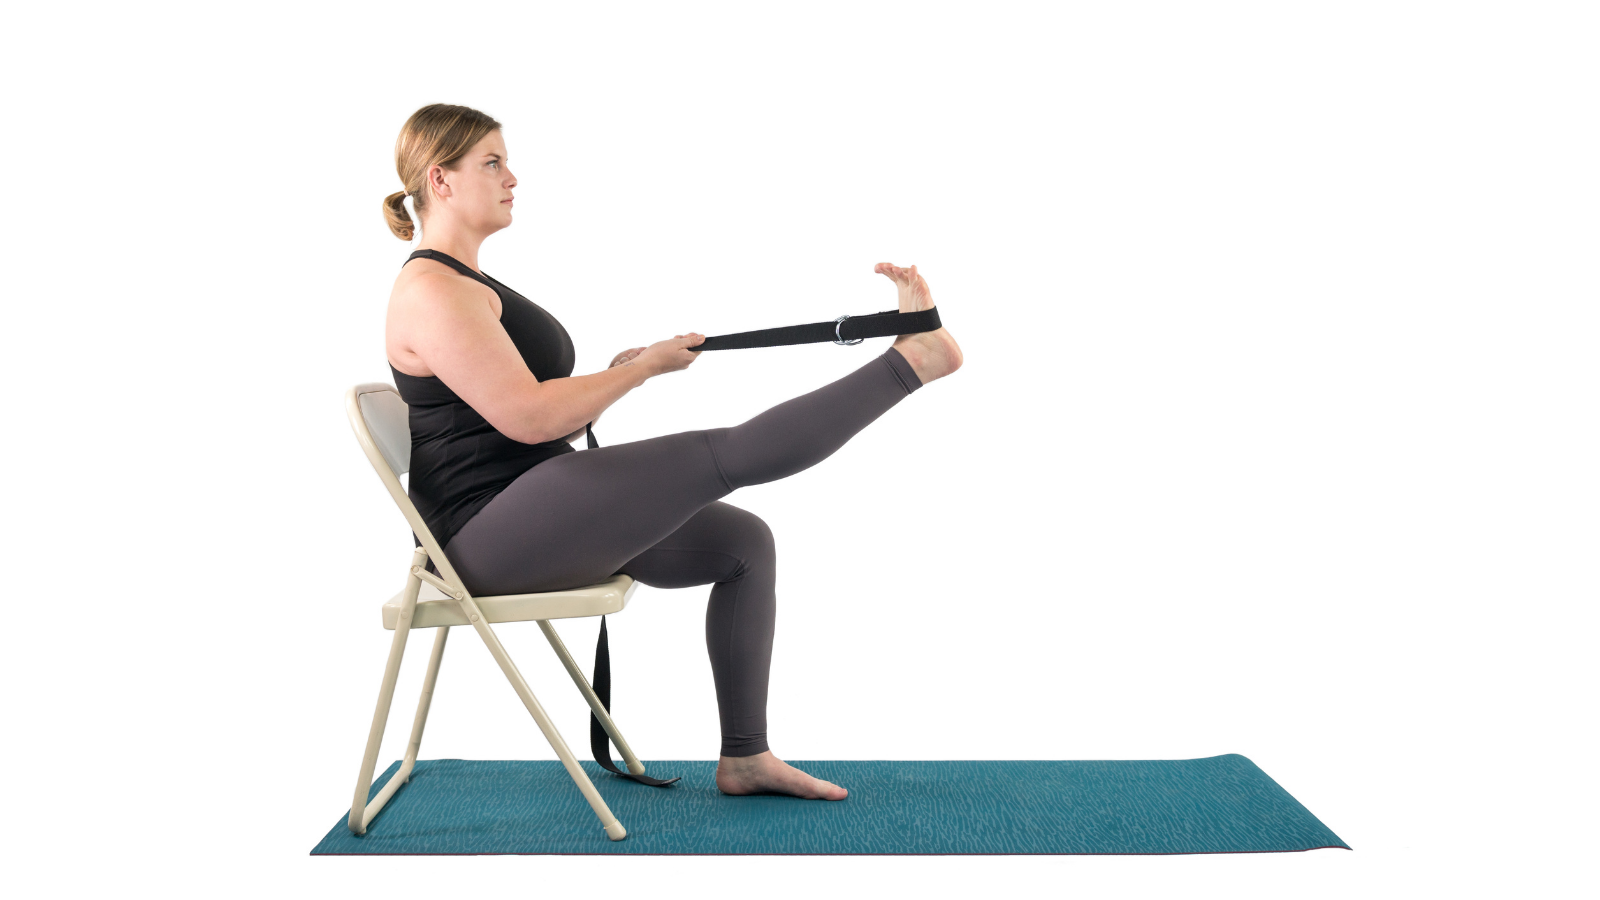 Beginner tips to practice Extended Hand to Toe Pose (Utthita Hasta Padangusthasana) in a chair